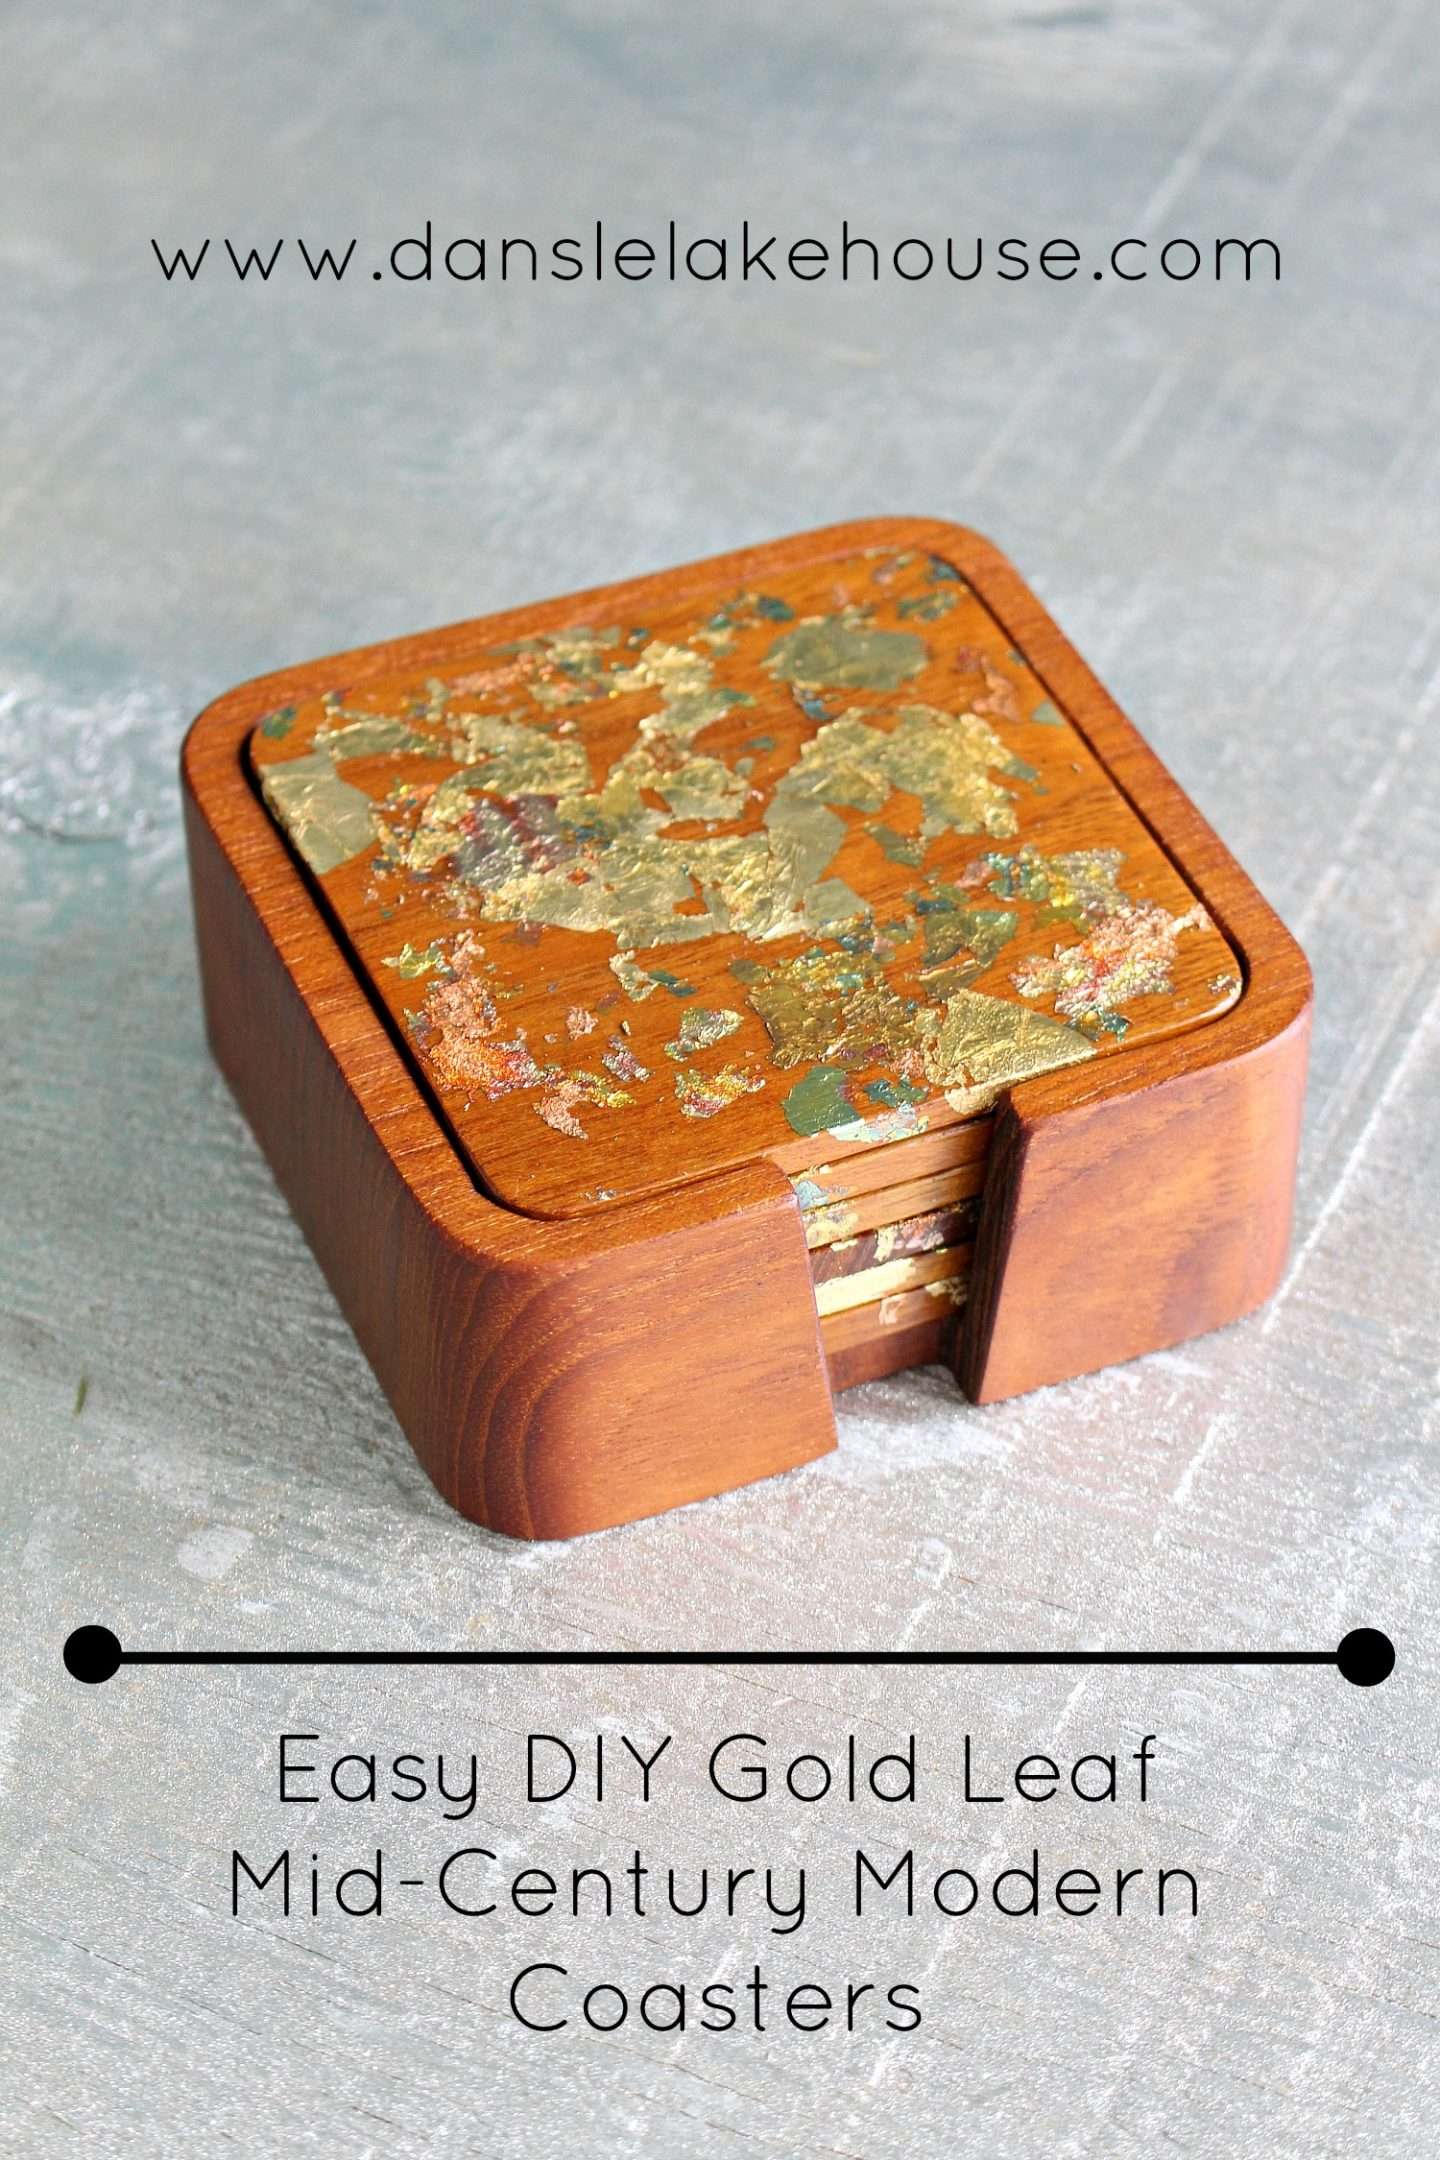 DIY Gold Leaf Coasters